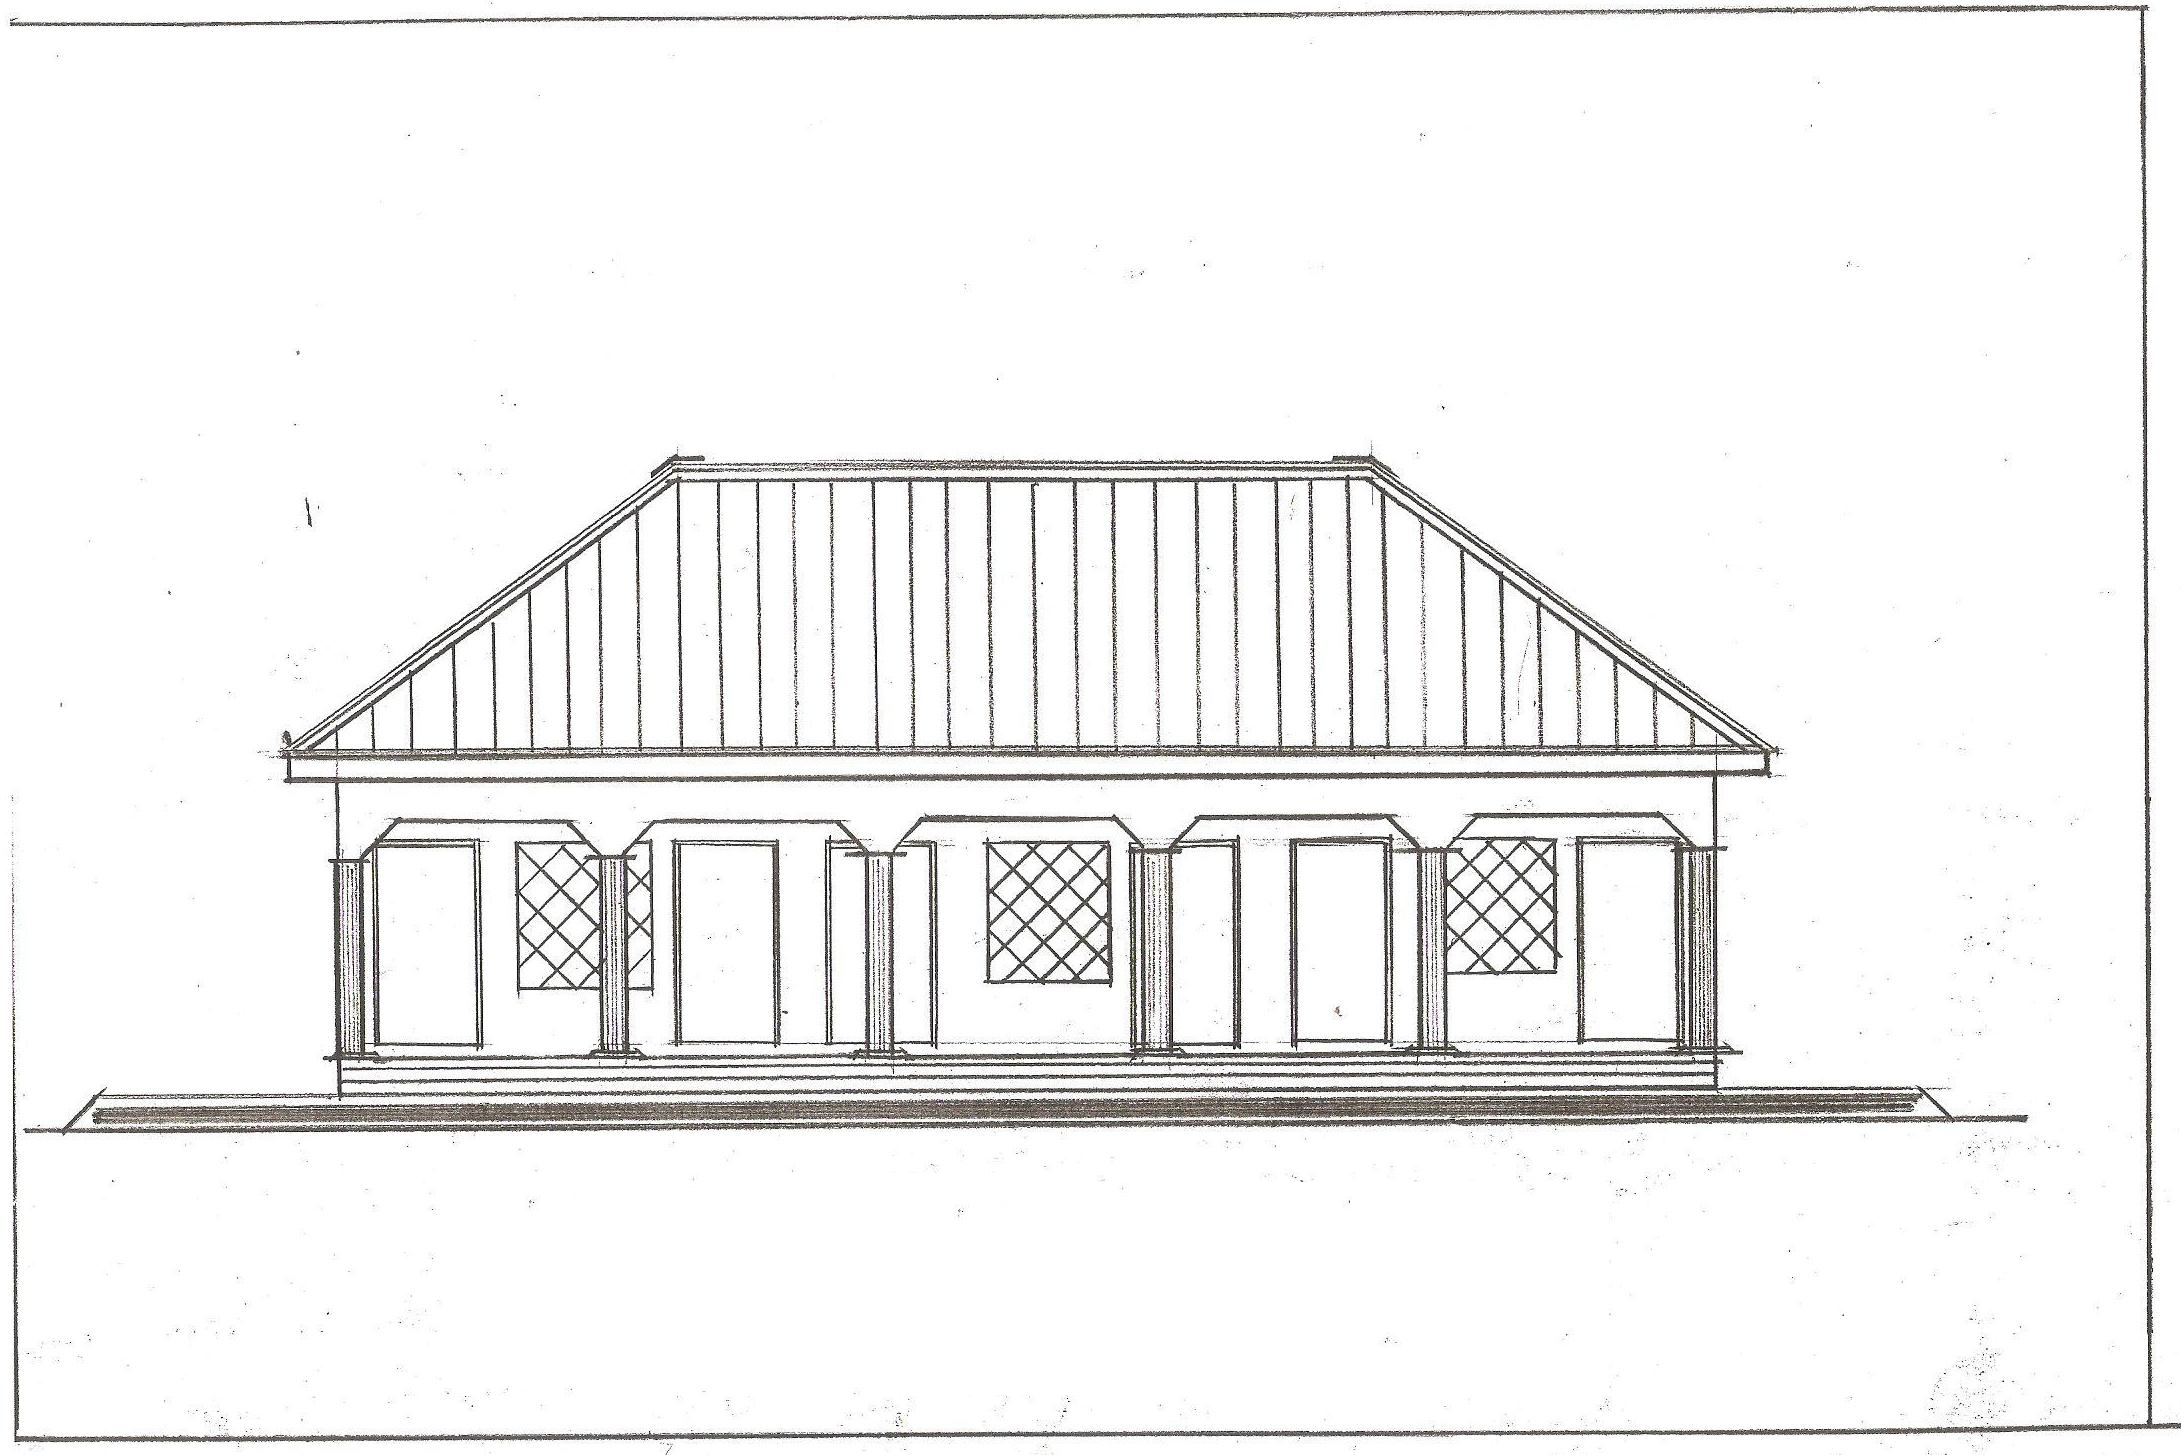 Front Elevation School Building : Front elevation building for the future generation